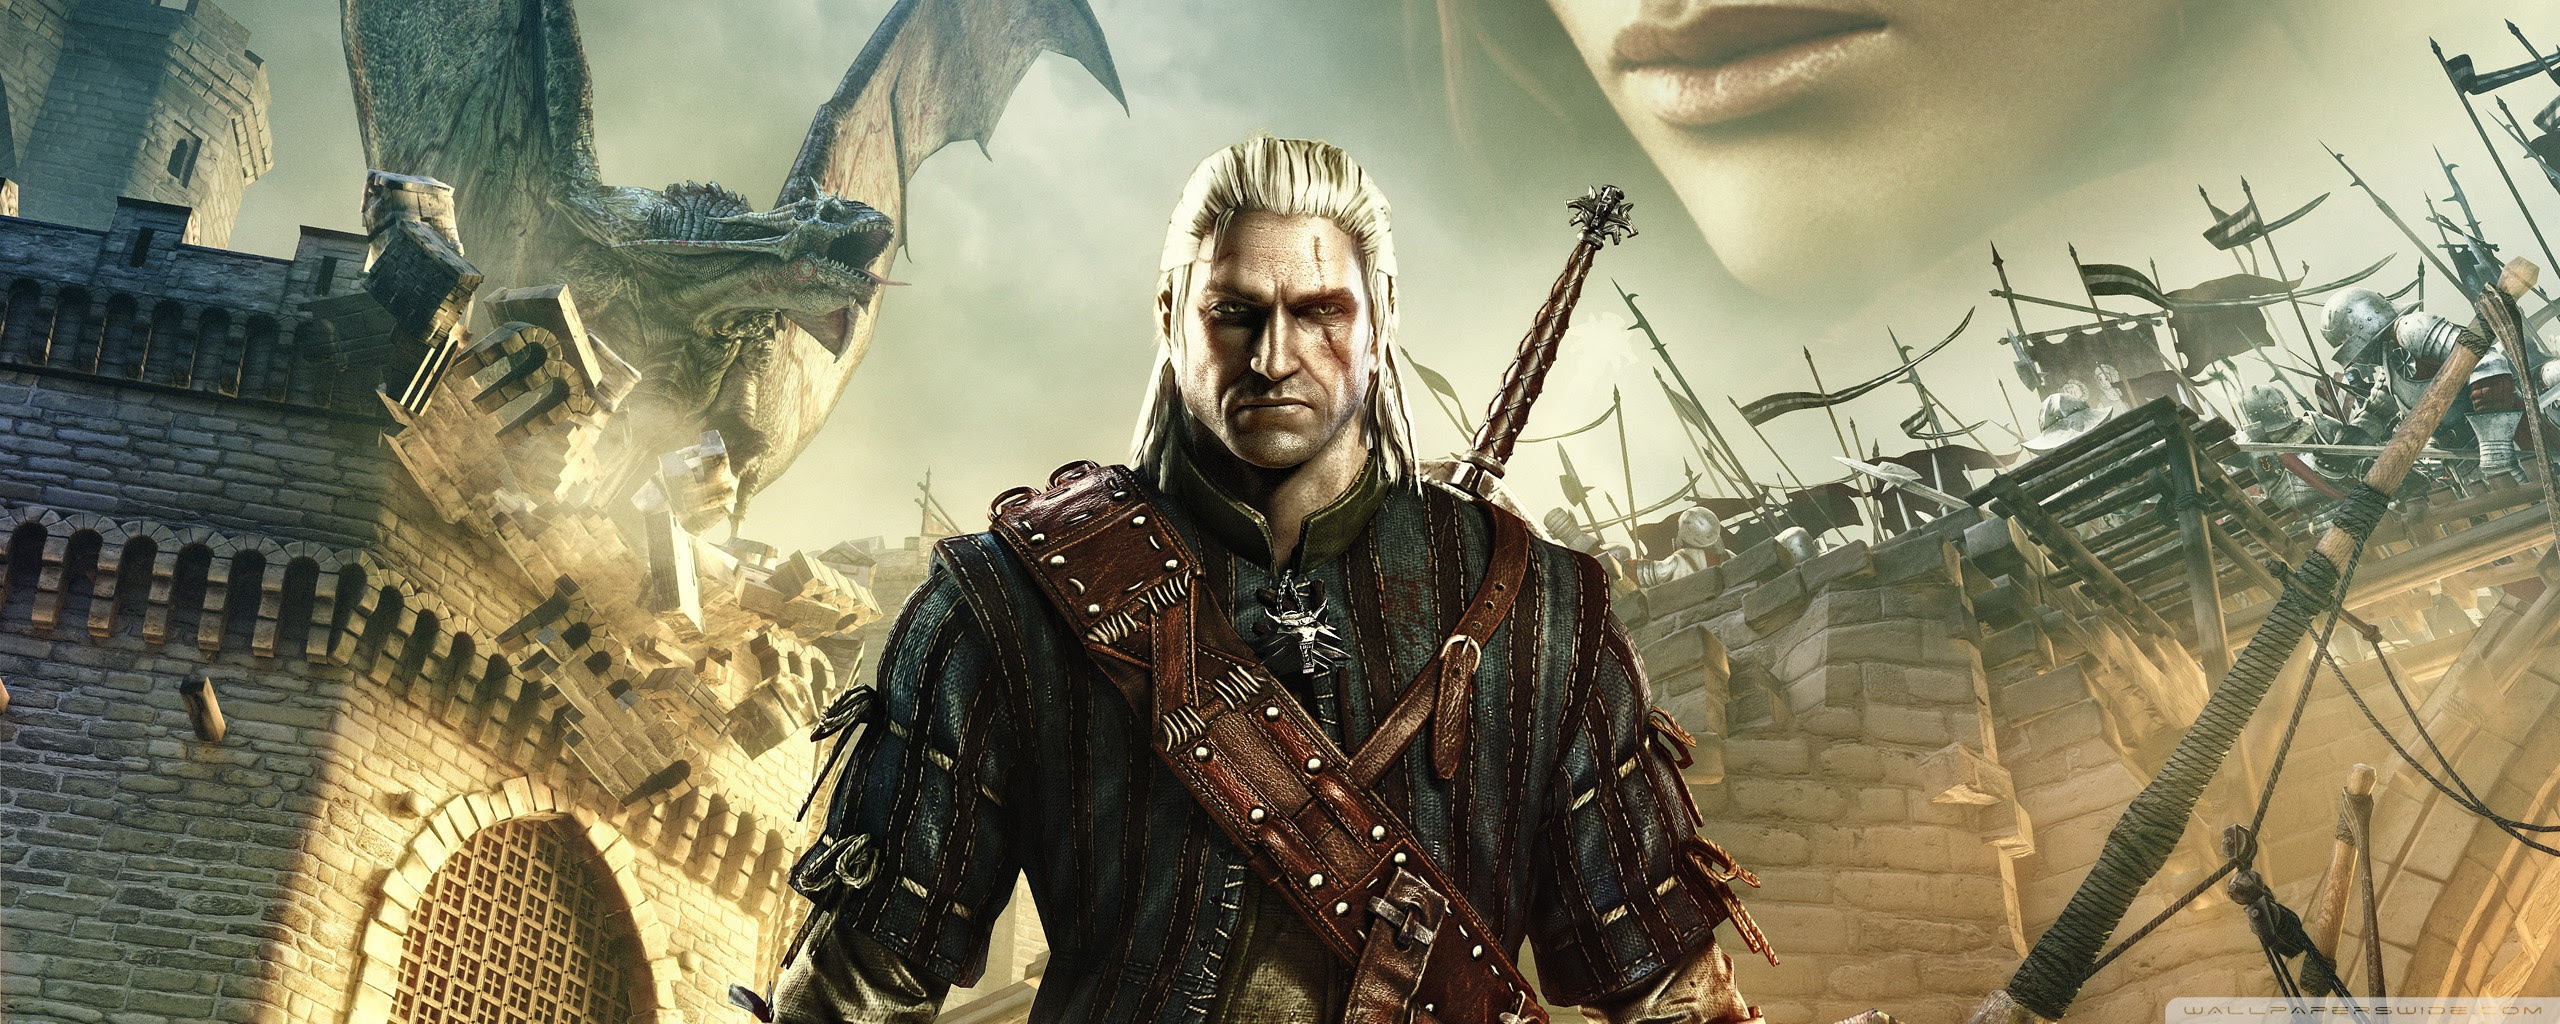 The Witcher 2 Assassins Of Kings Ultra Hd Desktop Background